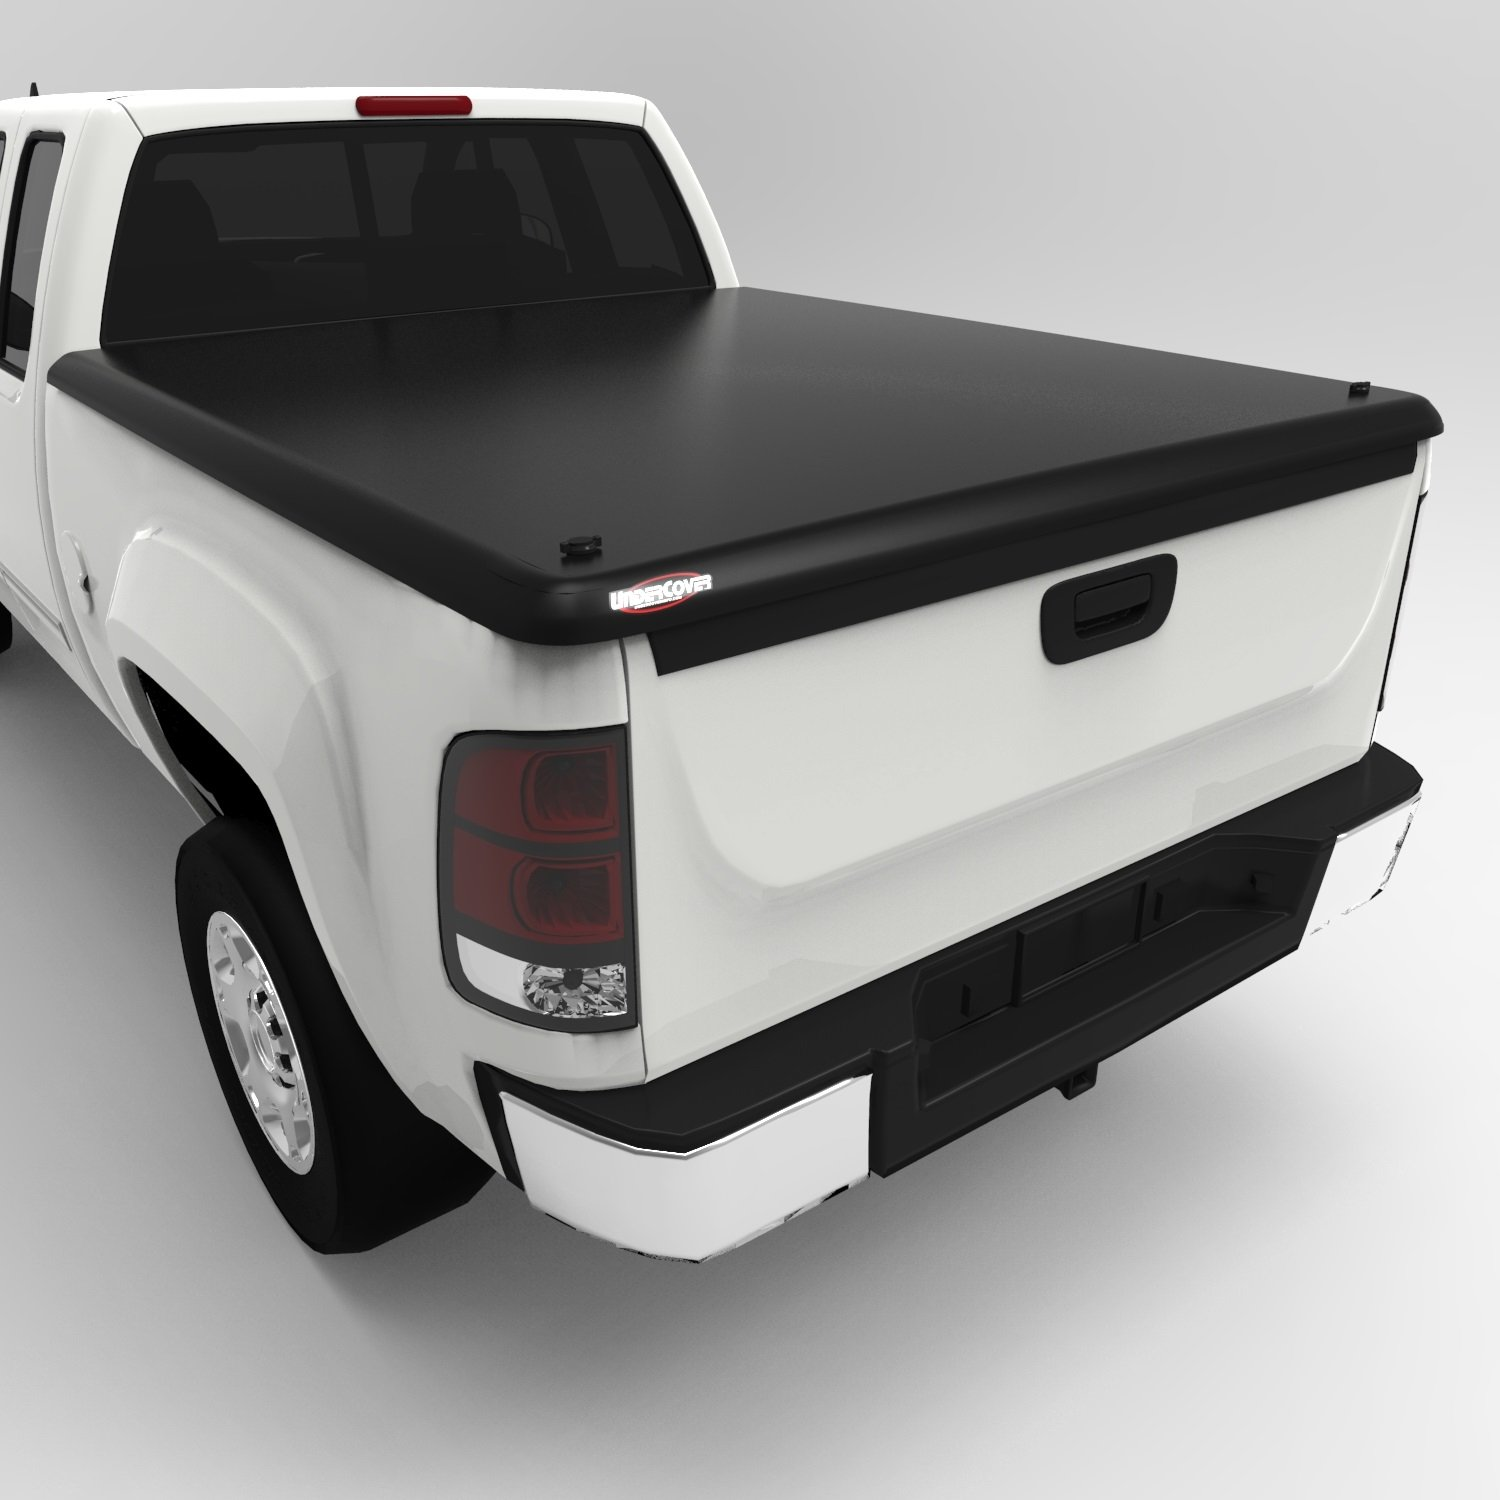 undercover flex lifestyle chevy covers bed ultra folding tonneau tri fold silverado cover